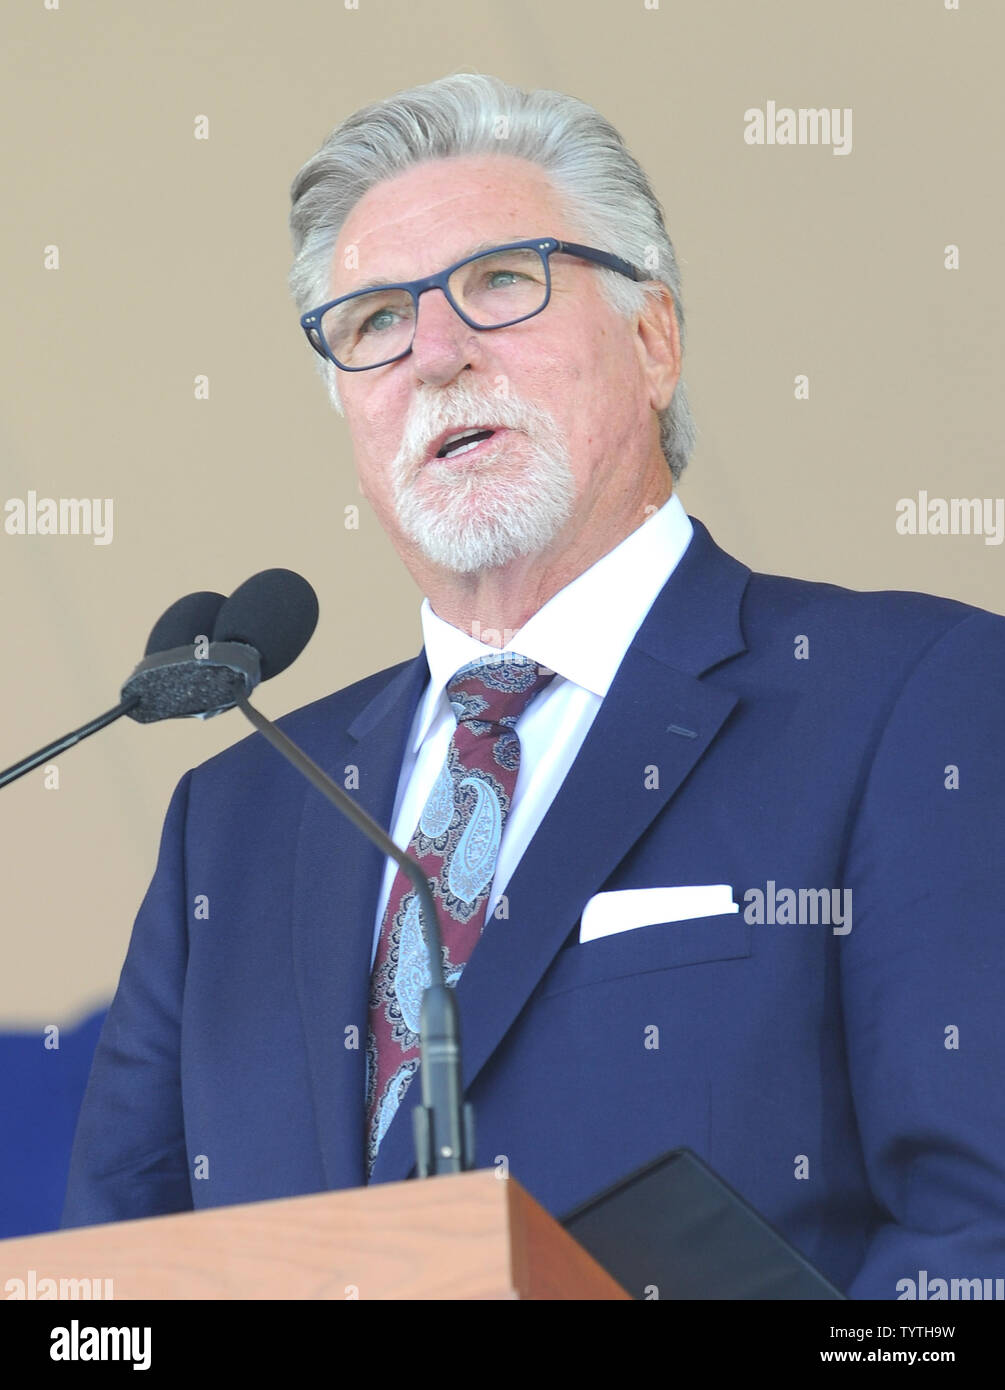 Jack Morris delivers his Baseball Hall of Fame induction speech at the Clark Sports Center in Cooperstown, NY on July 29, 2018.  A record 60 Hall of Famers are scheduled to be in Central New York to honor Vladimir Guerrero, Trevor Hoffman, Chipper Jones, Jack Morris, Jim Thome and Alan Trammell at the National Baseball Hall of Fame and Museum during Hall of Fame Weekend on July 27-30.     Photo by George Napolitano/UPI                                                                                                   . - Stock Image